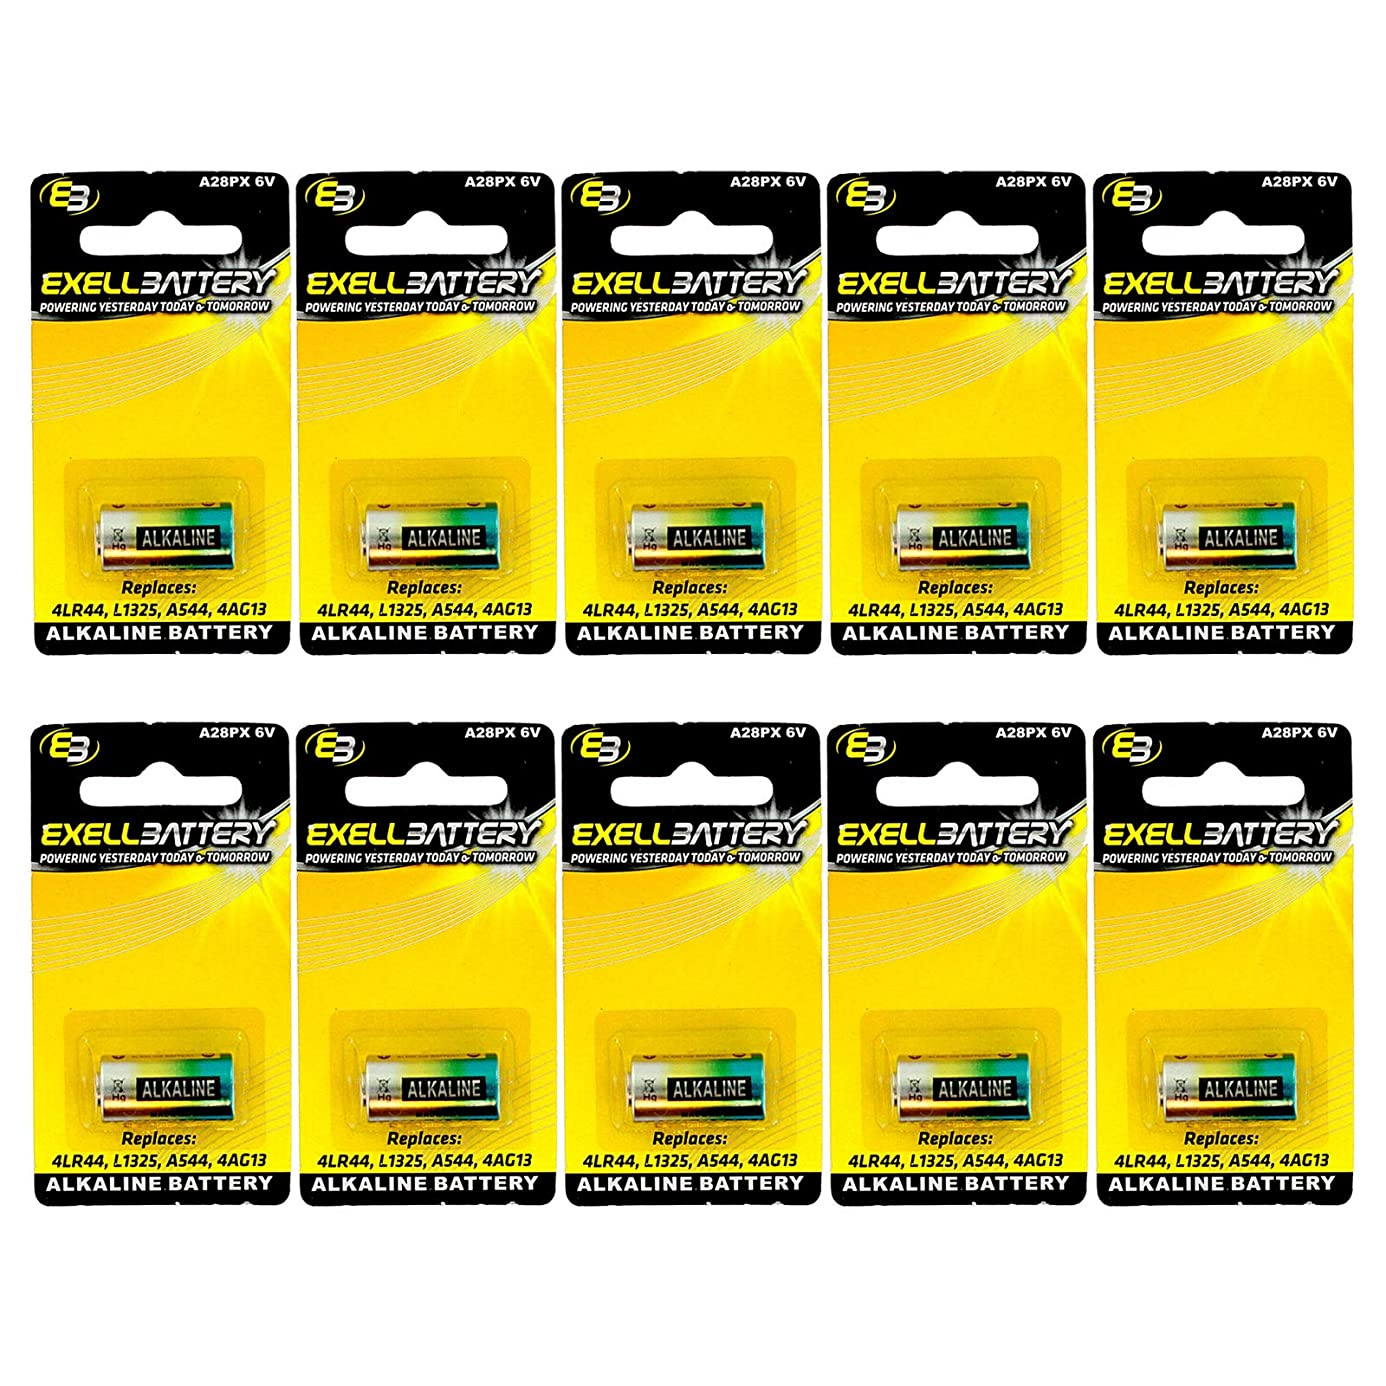 10x Exell A28PX Alkaline 6V Battery Replaces PX28A, A544, 4LR44, K28A, V34PX, 7H34, 4NZ13, V4034PX, L1325, 4G13, 4034PX, PX28AB, 1414A For LED Lights FAST USA SHIP rdh6482432